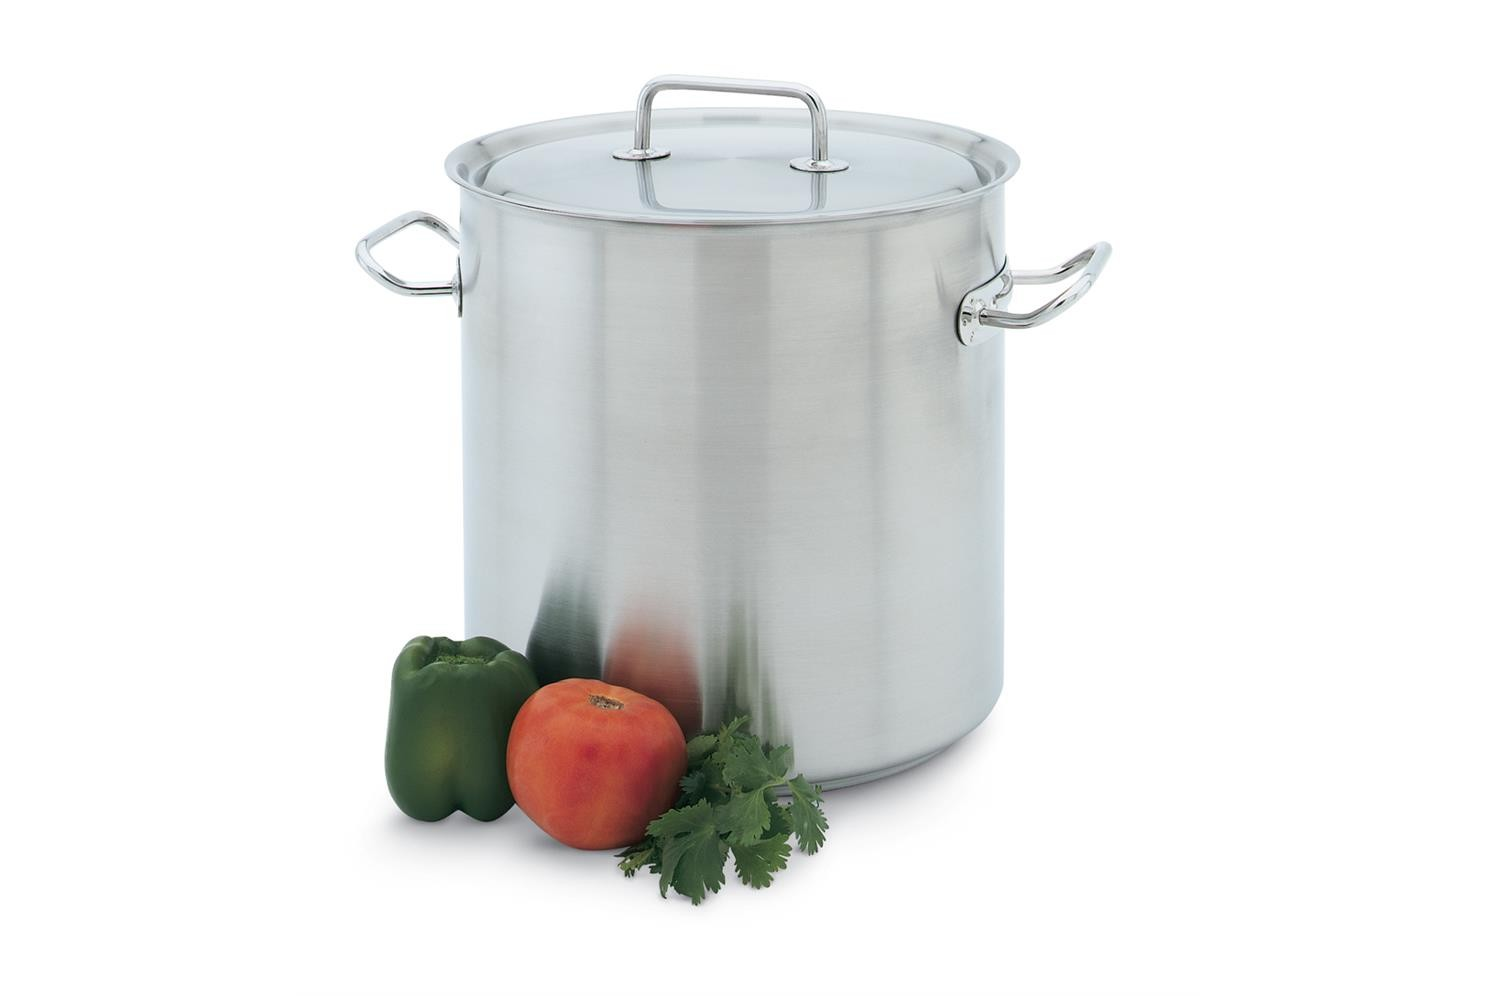 Vollrath 47720 Intrigue Stainless Steel Stock Pot 6-1/2 Qt.